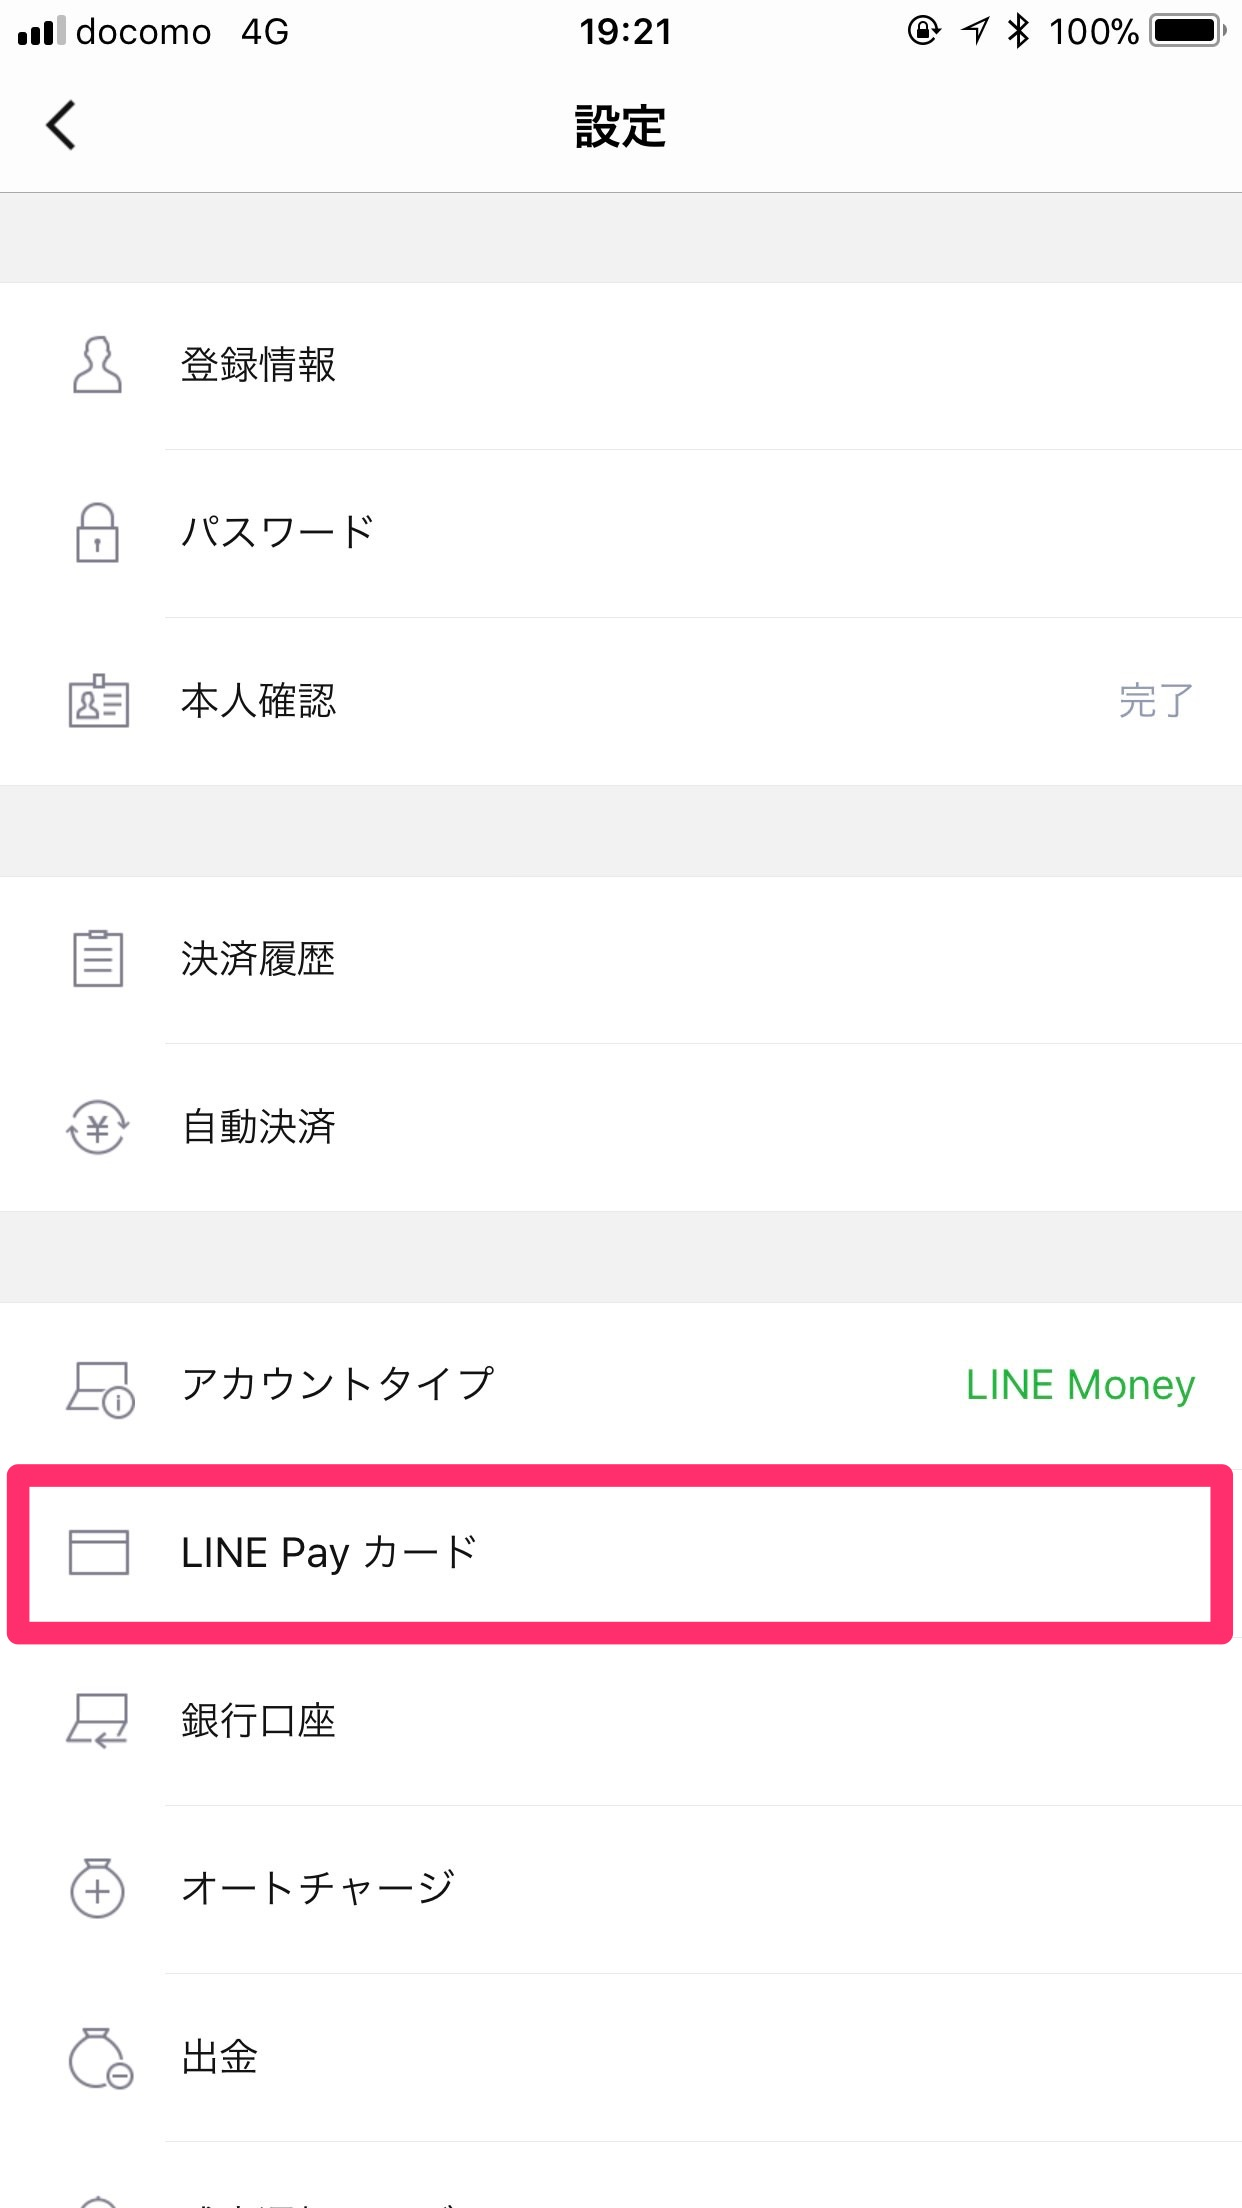 Line pay 4 number 9330